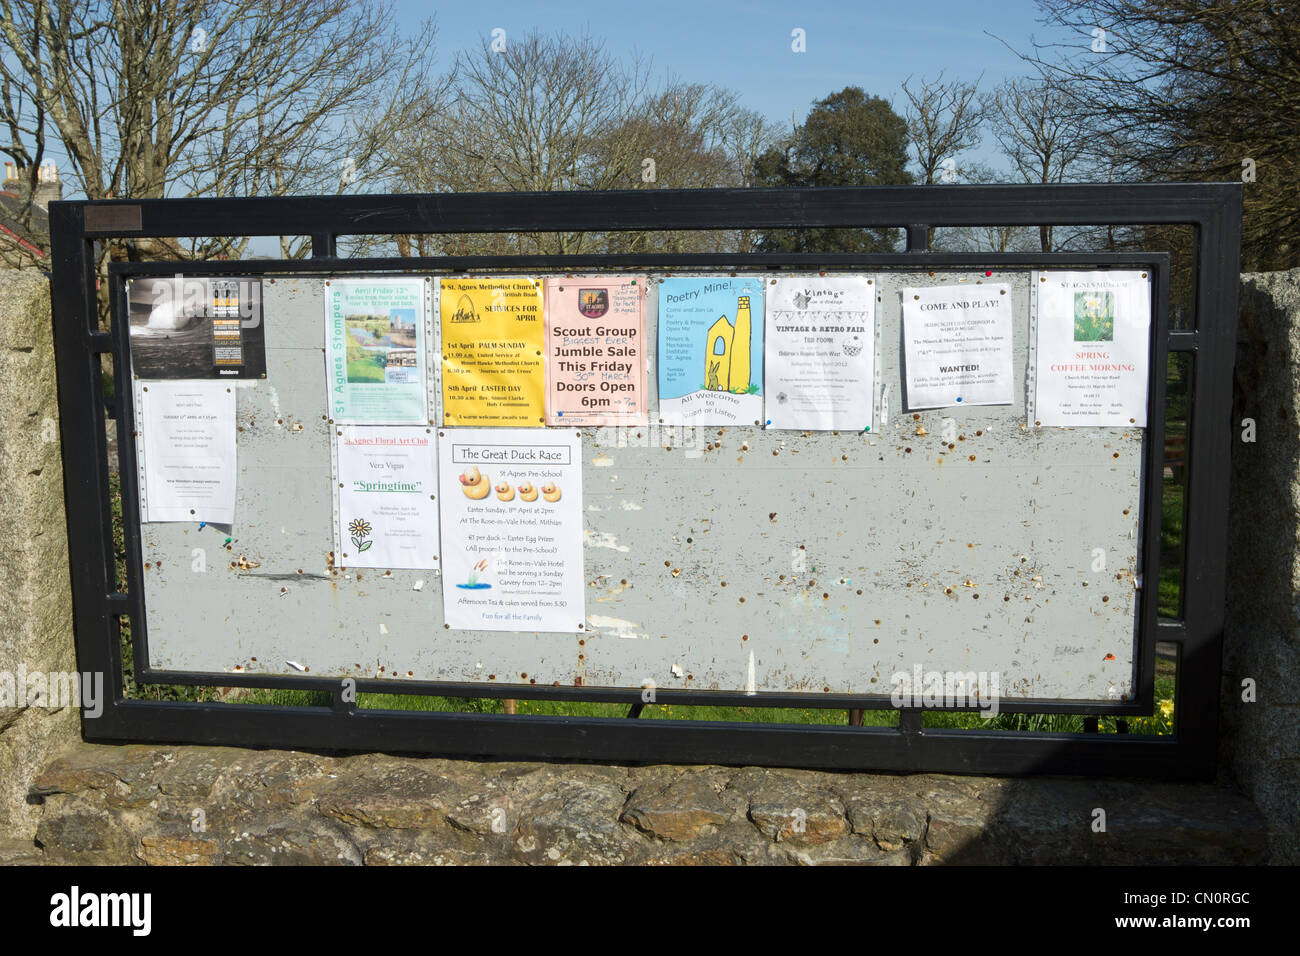 St Agnes Cornish village noticeboard local events information. - Stock Image